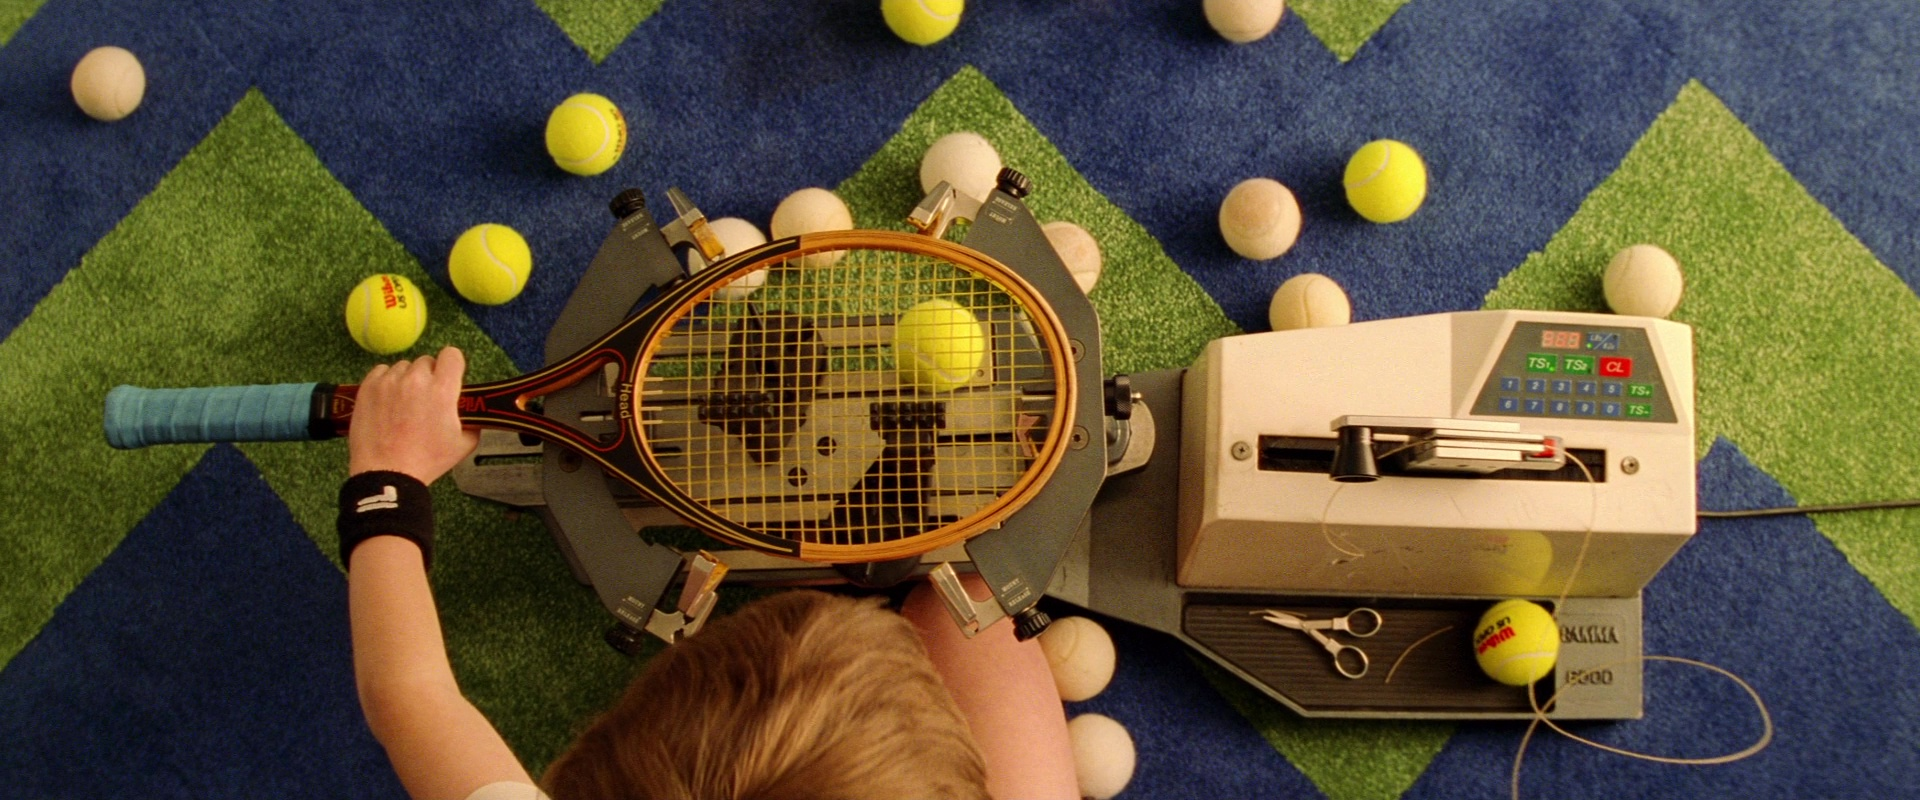 18 Movie/TV Tennis Aces We'd Court | EW.com |Royal Tenenbaums Tennis Scene